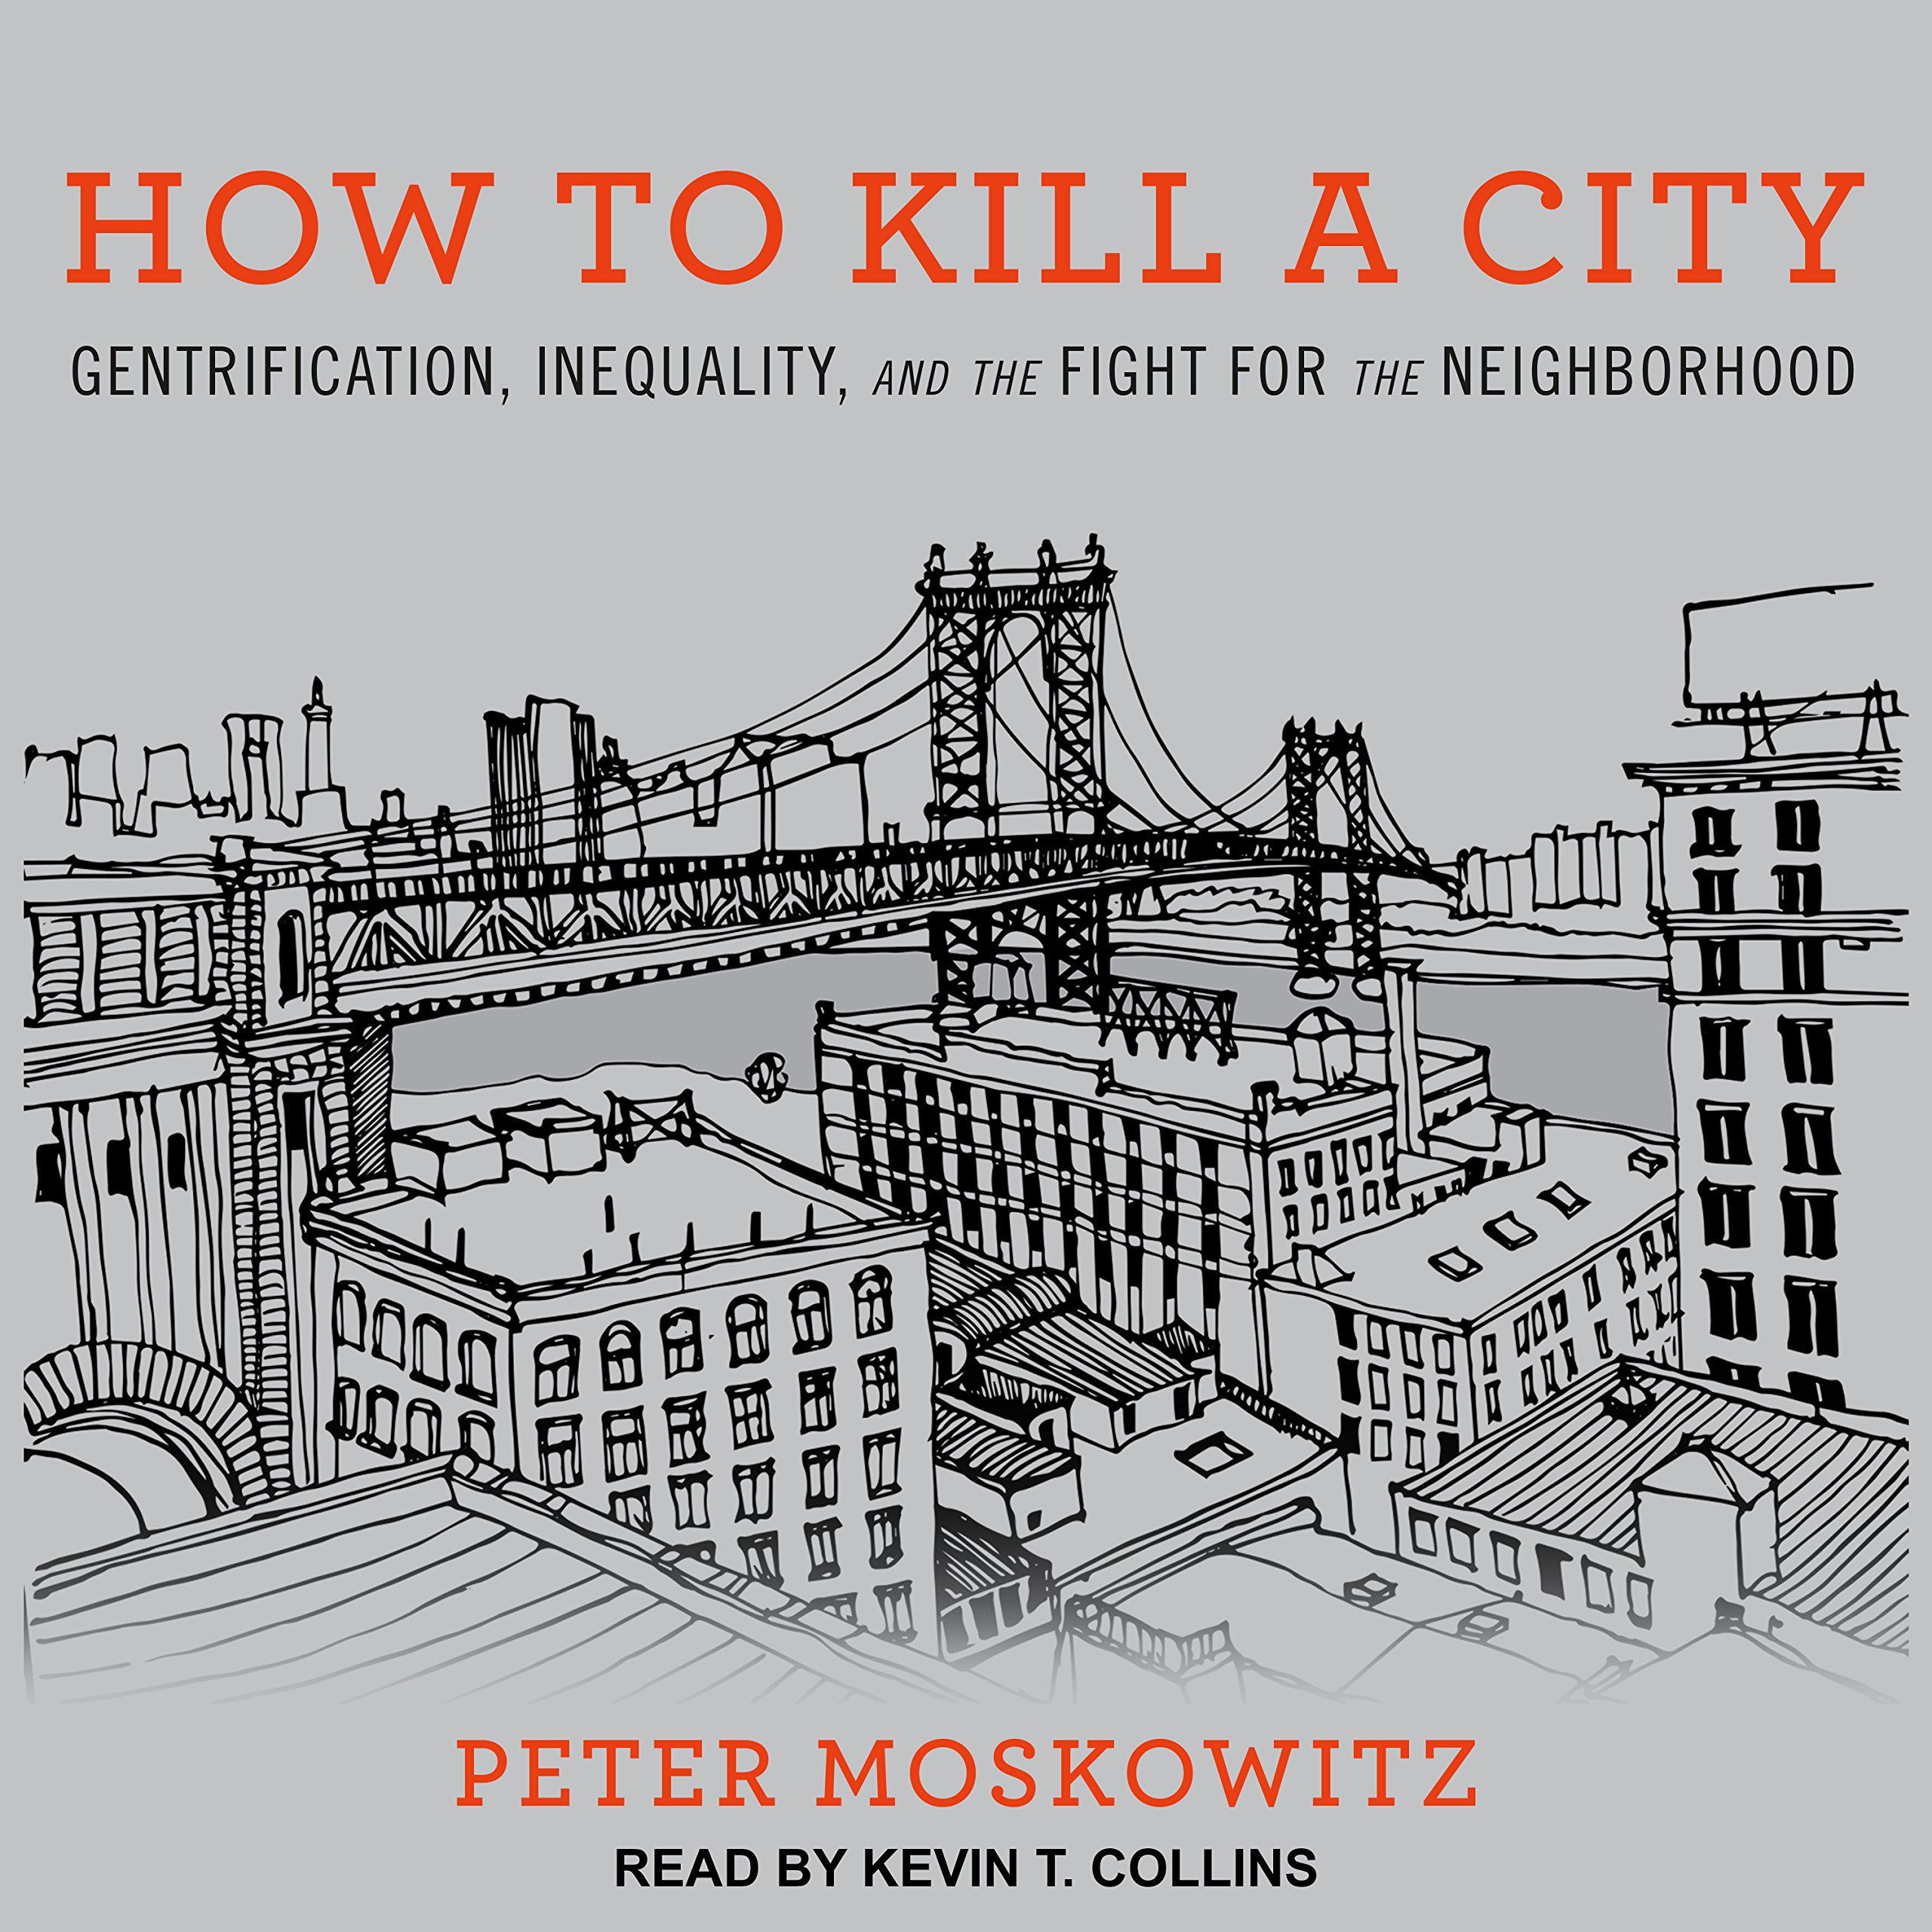 How to Kill a City: Gentrification, Inequality, and the Fight for the Neighborhood ebook